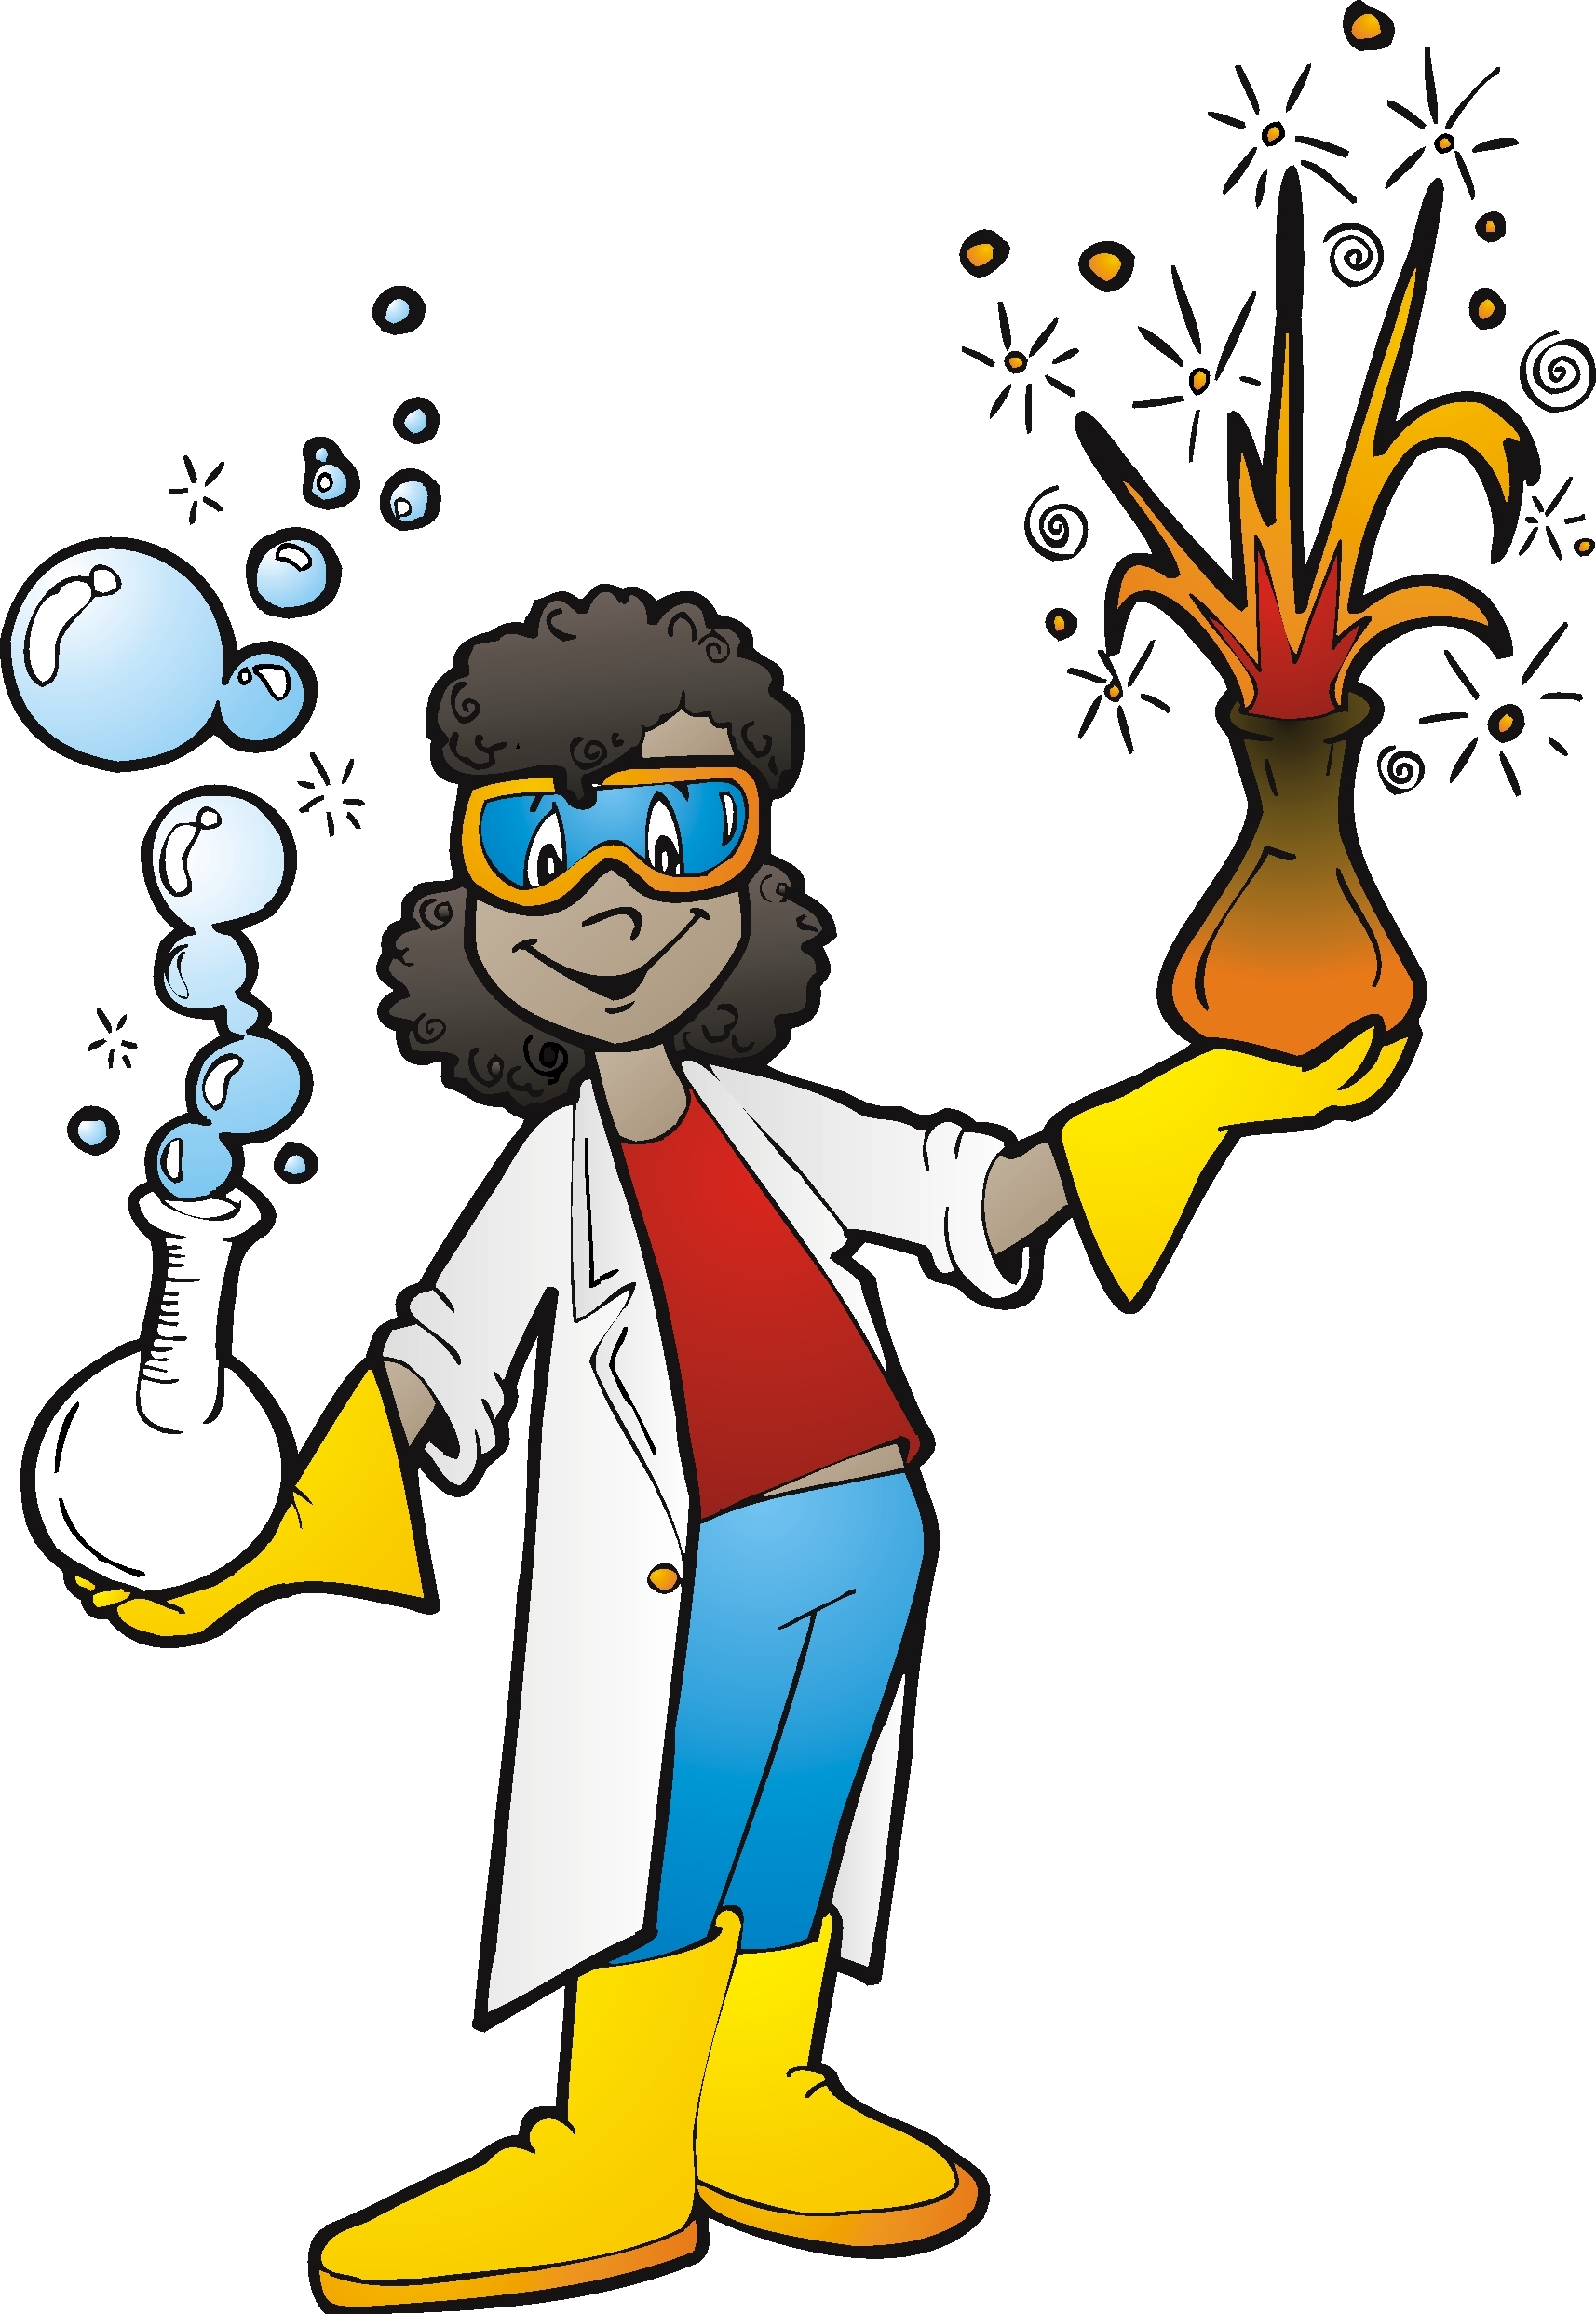 Mad scientist pictures clipart jpg freeuse download African american scientist man clipart - Clip Art Library jpg freeuse download